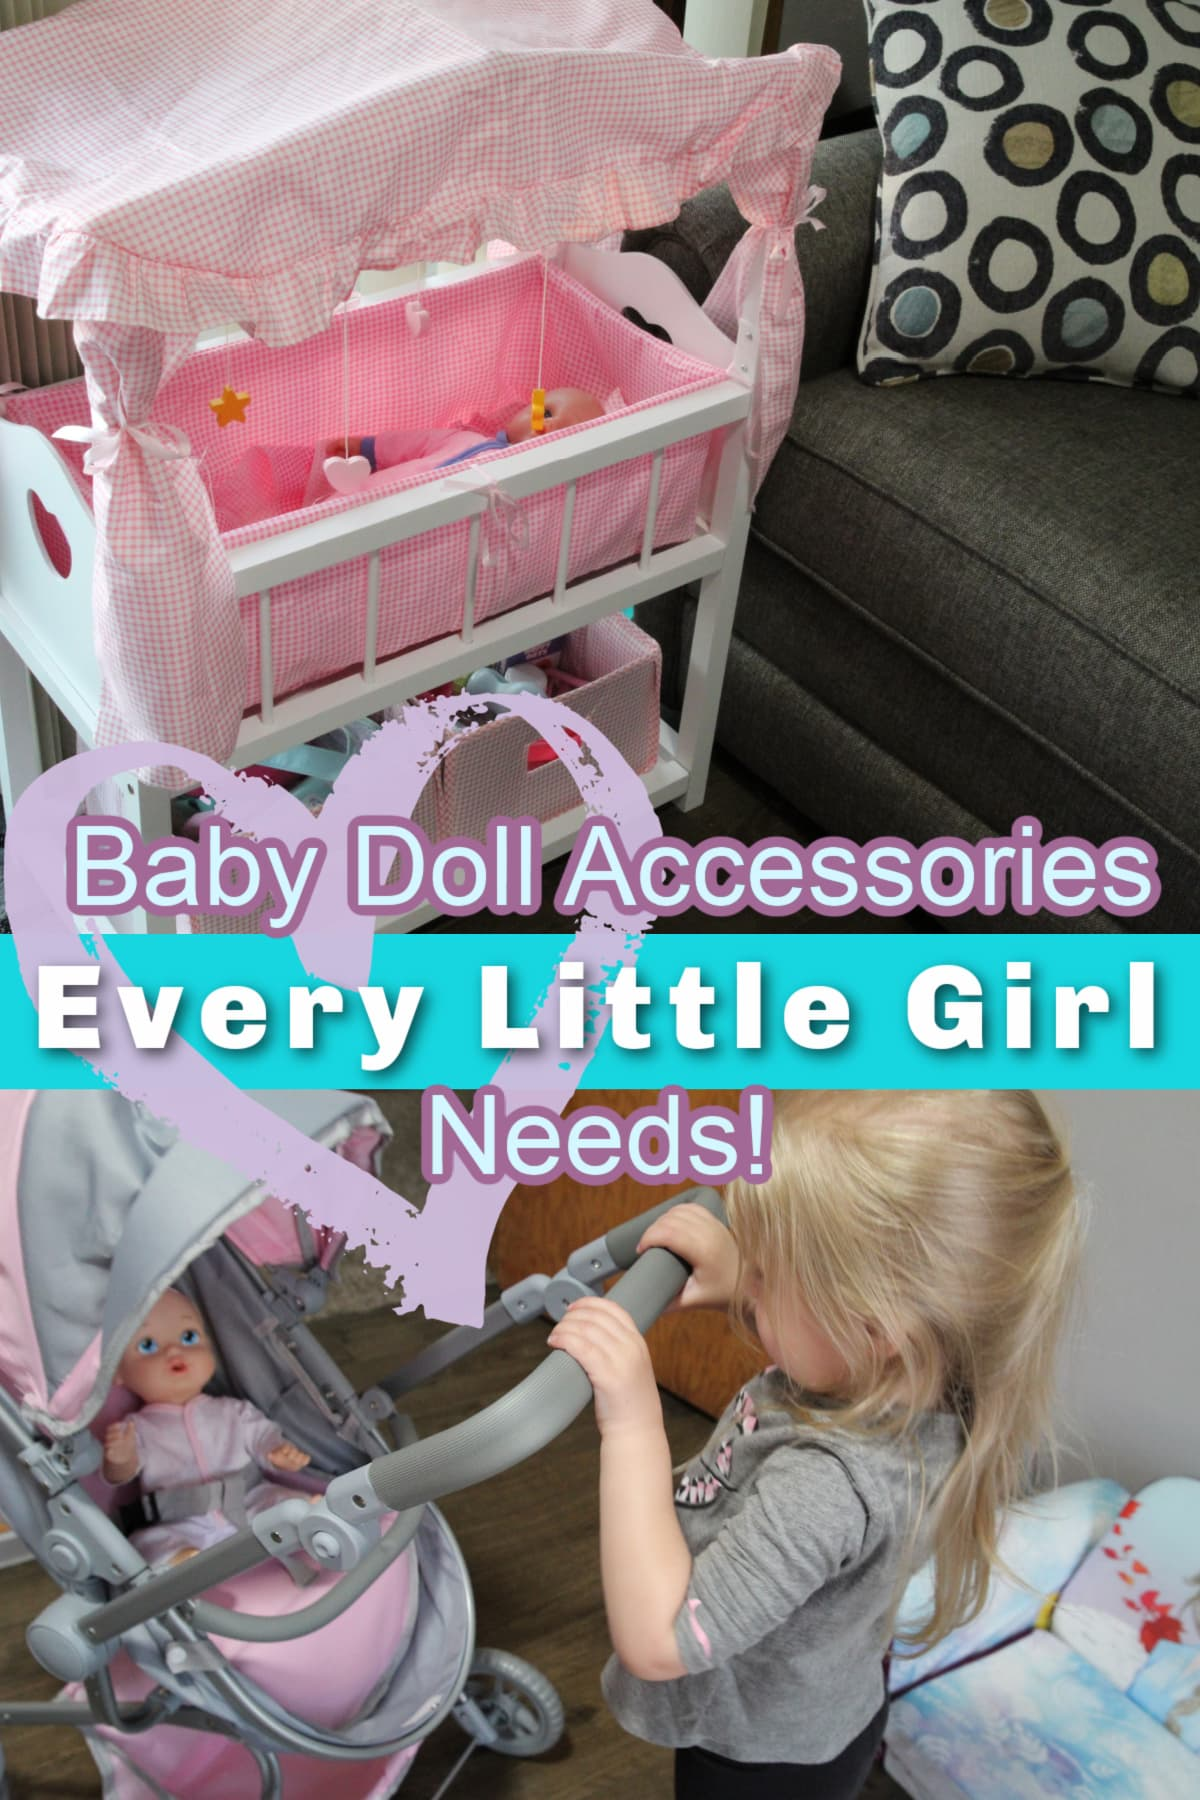 Doll Crib and Girl With Doll Stroller-Baby Doll Accessories Every Little Girl Needs